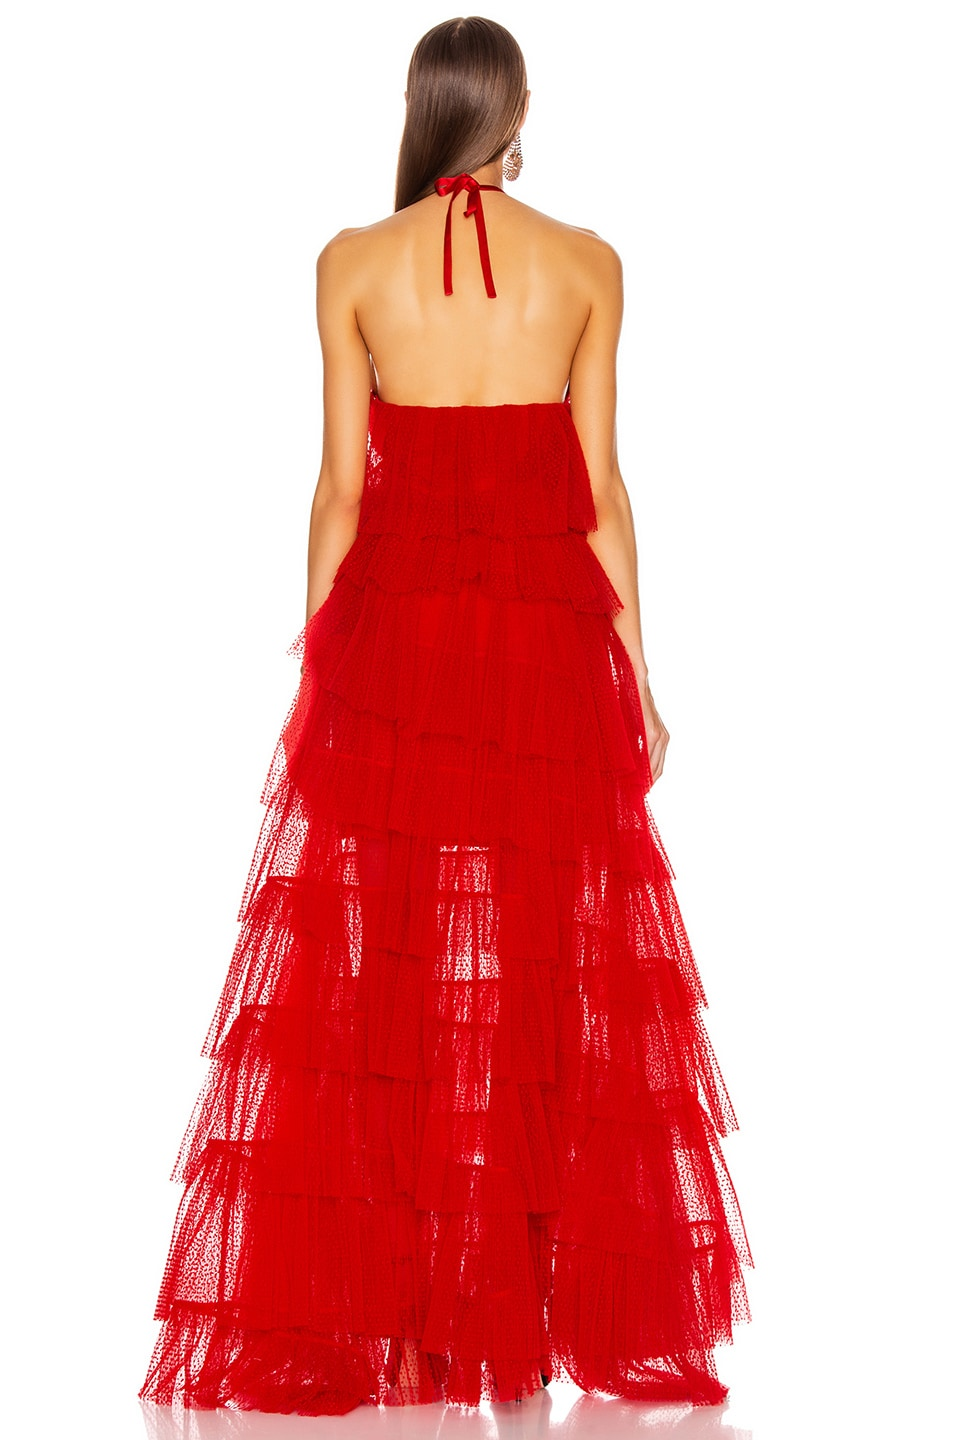 Image 4 of Alexis Justinia Dress in Cherry